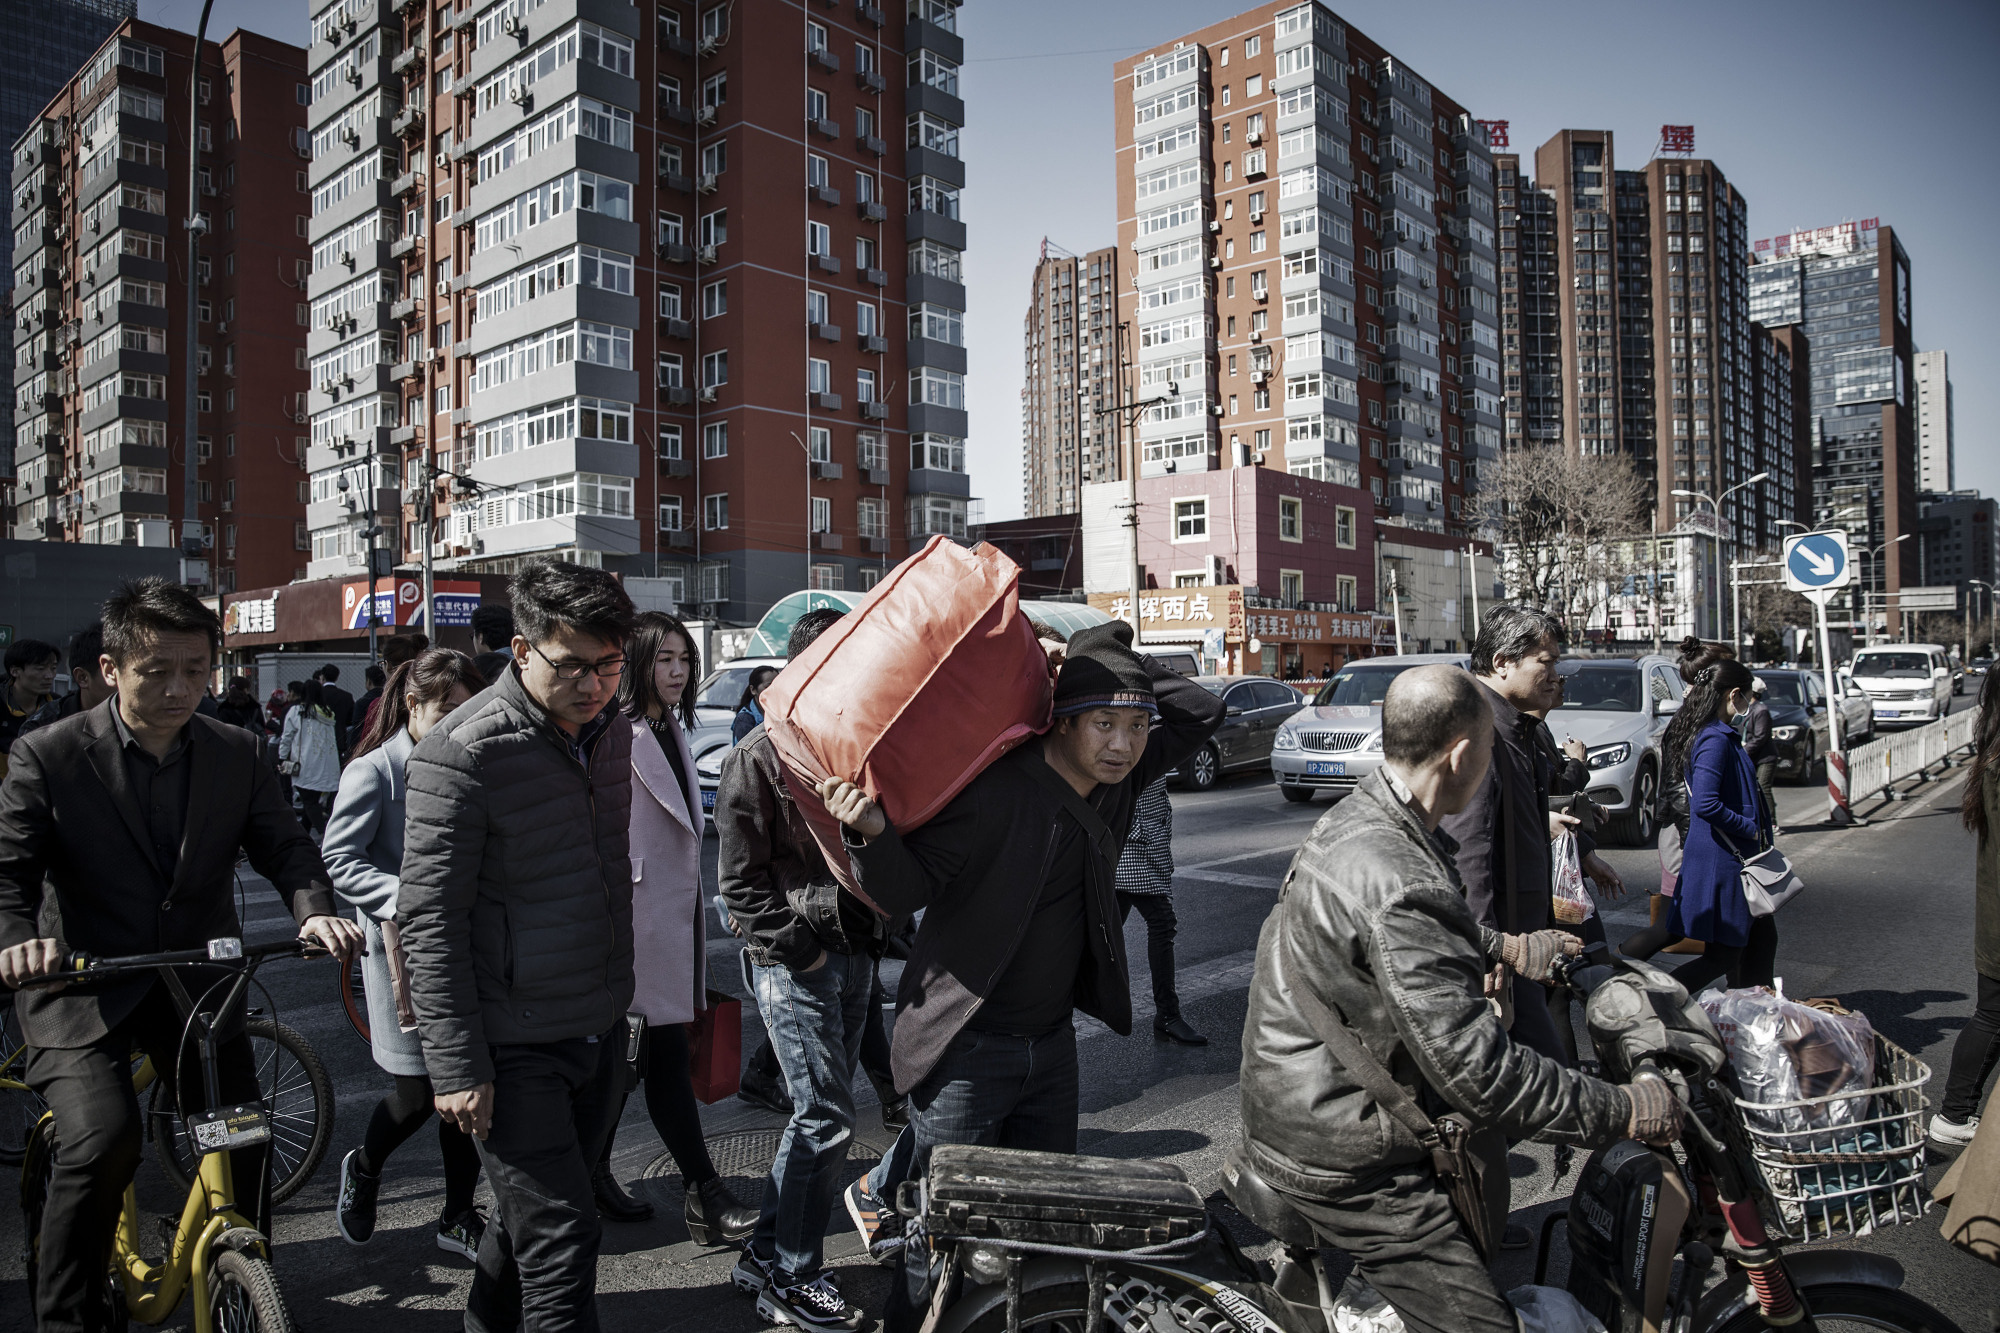 People cross a street in Beijing. China is thinking about how to avoid what happened in Japan after its epic bust in the 1990s and the decades of stagnation that followed. | BLOOMBERG